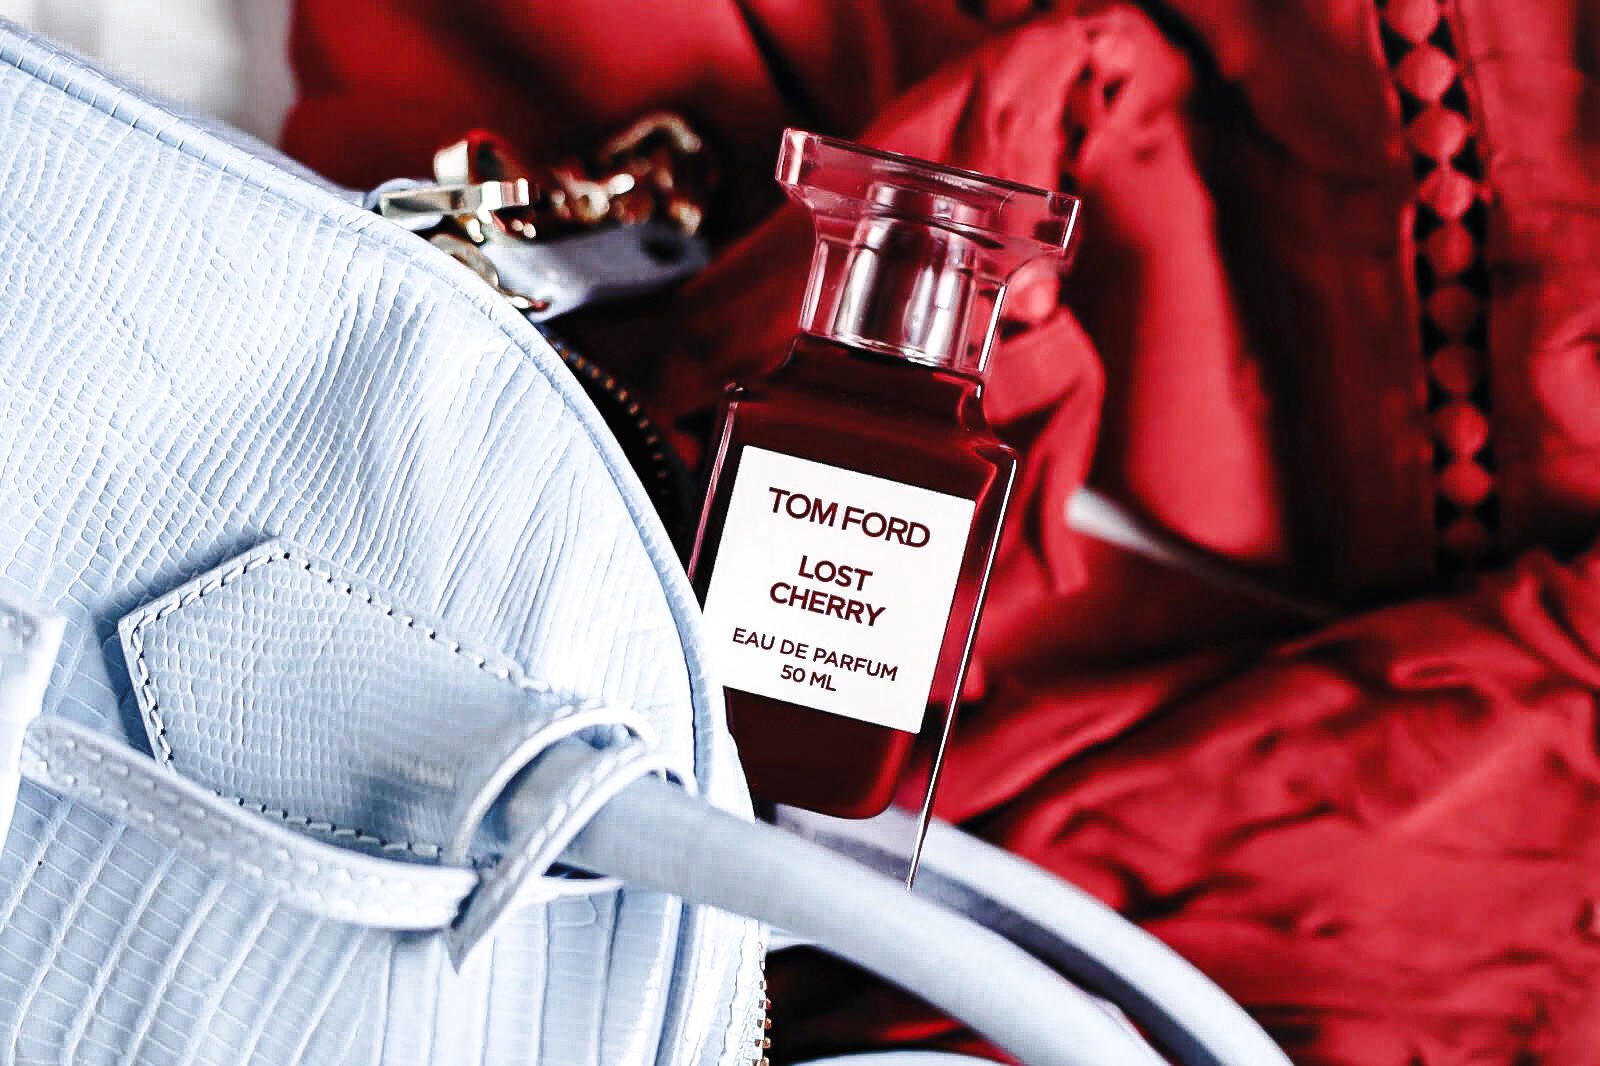 tom-ford-lost-cherry-parfum-avis-test-critique